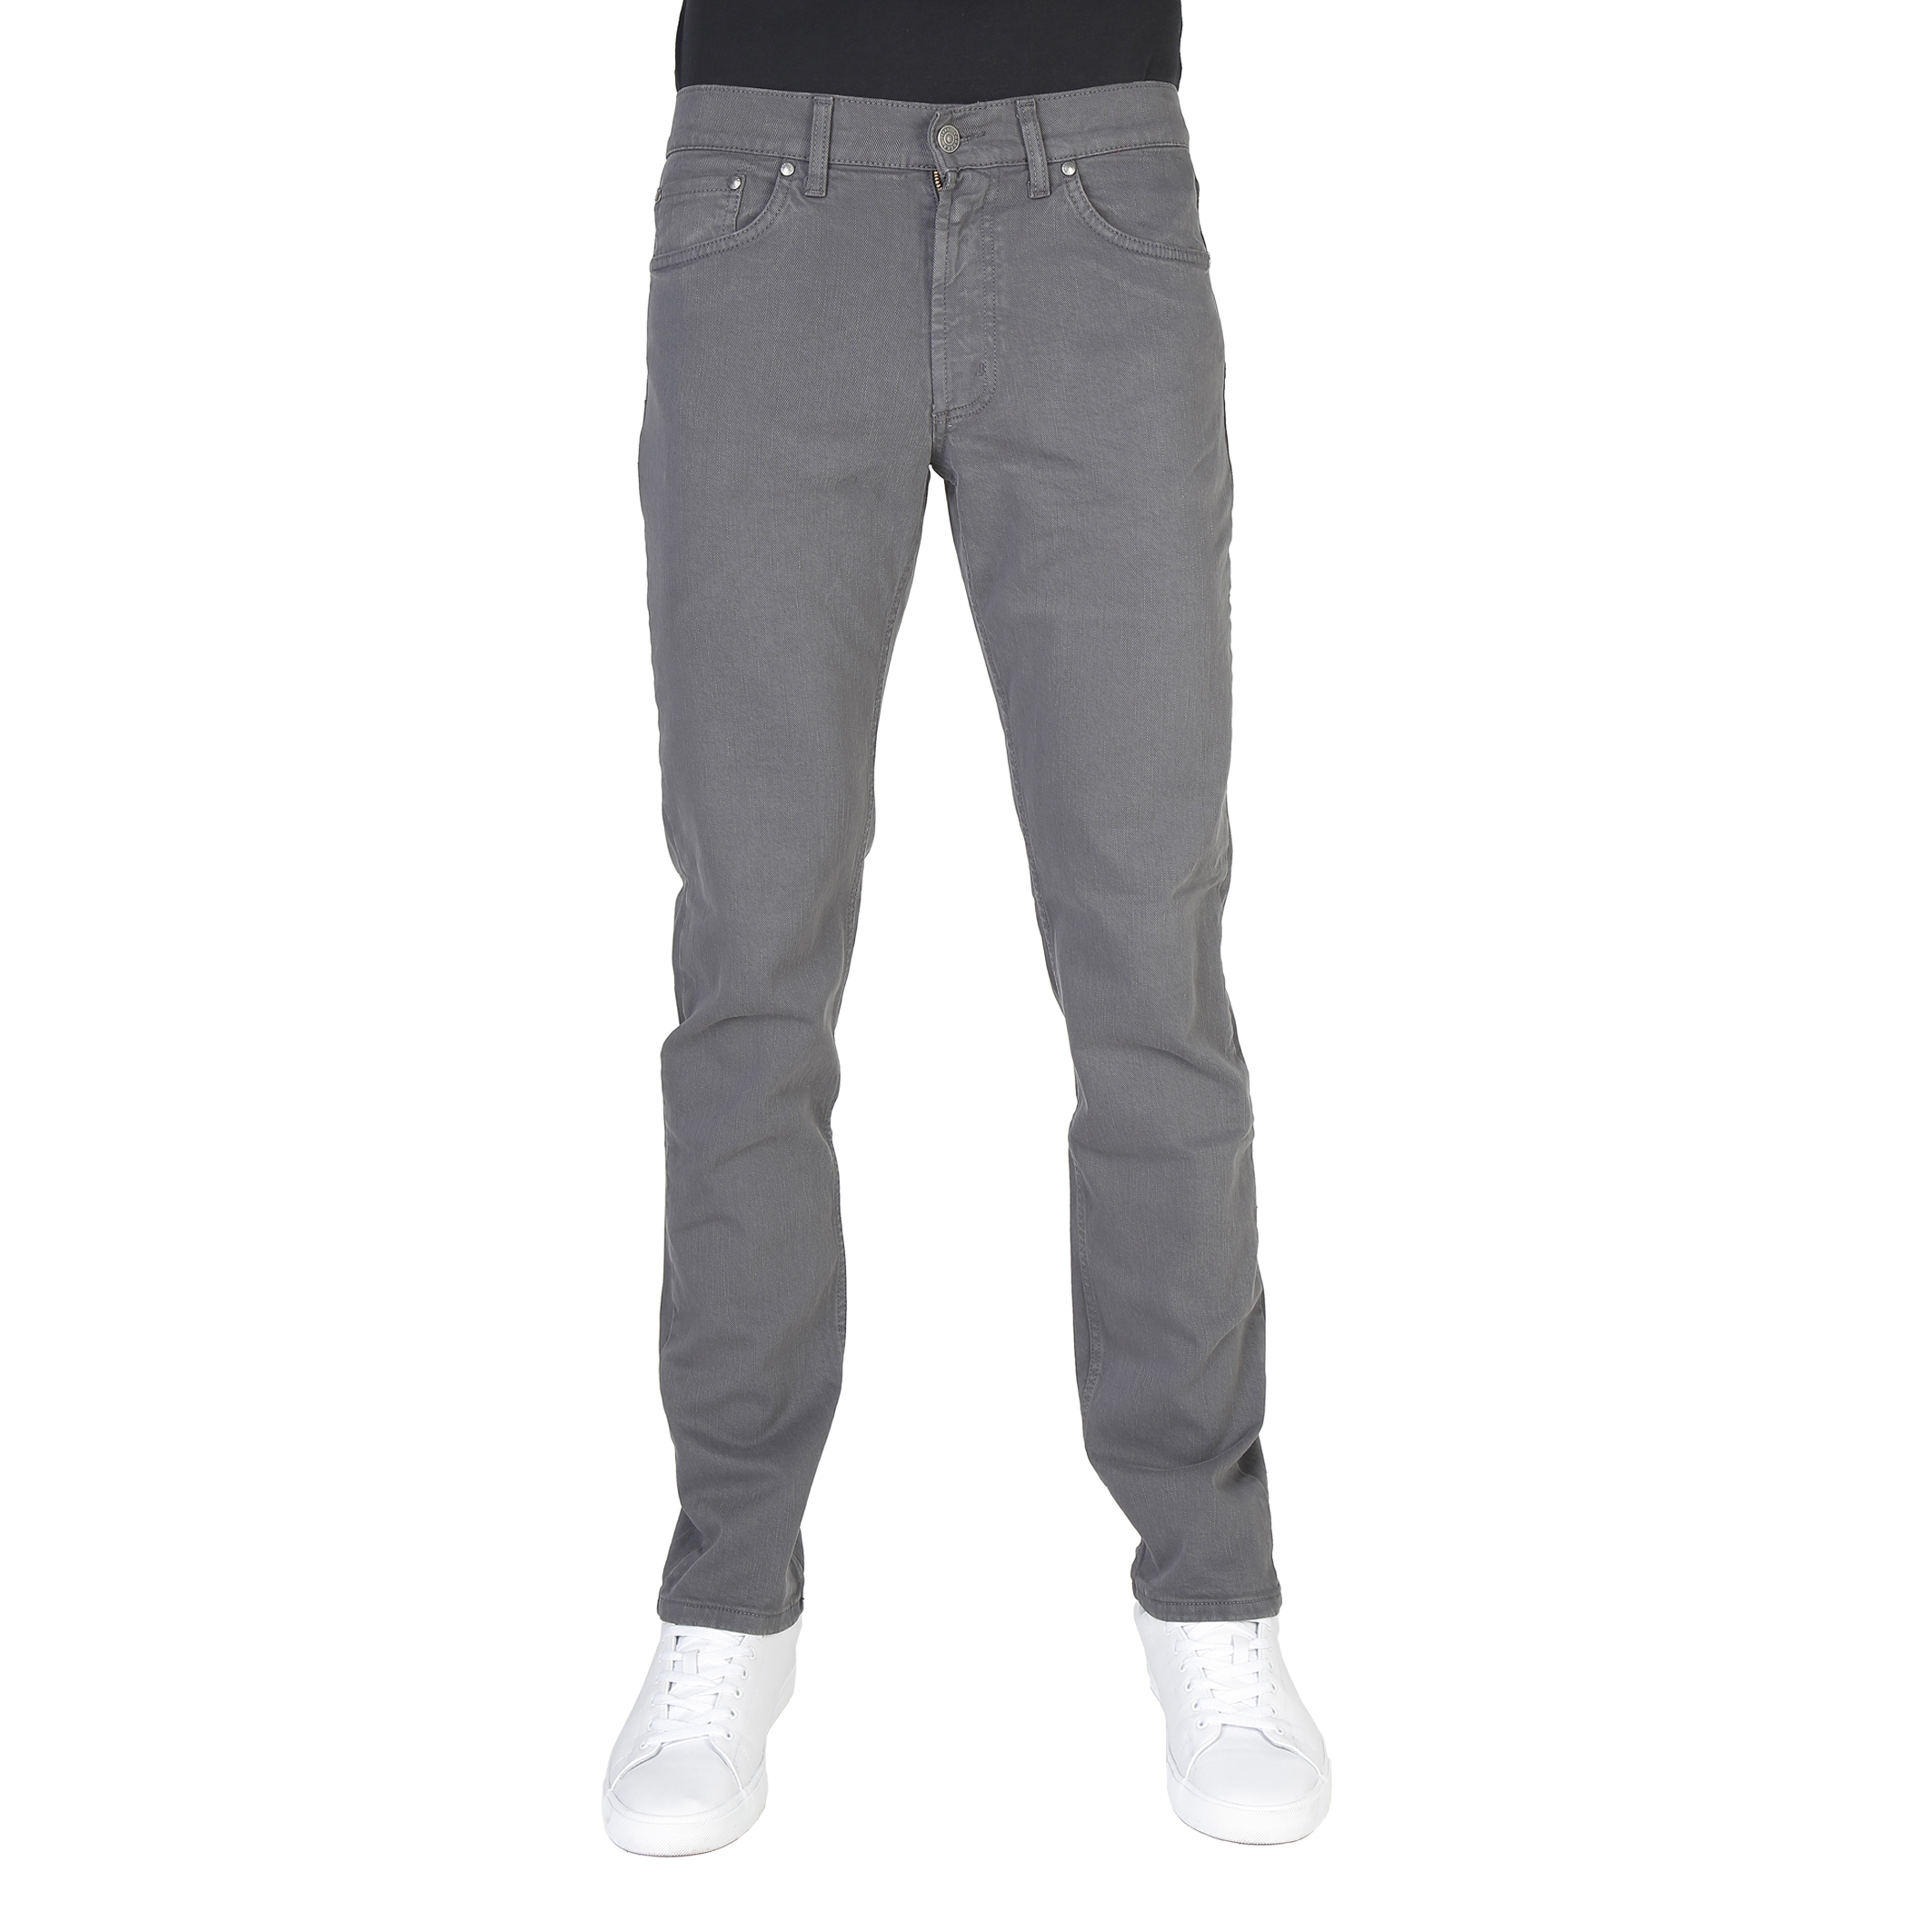 Jeans  Carrera Jeans 000700_9302A grey